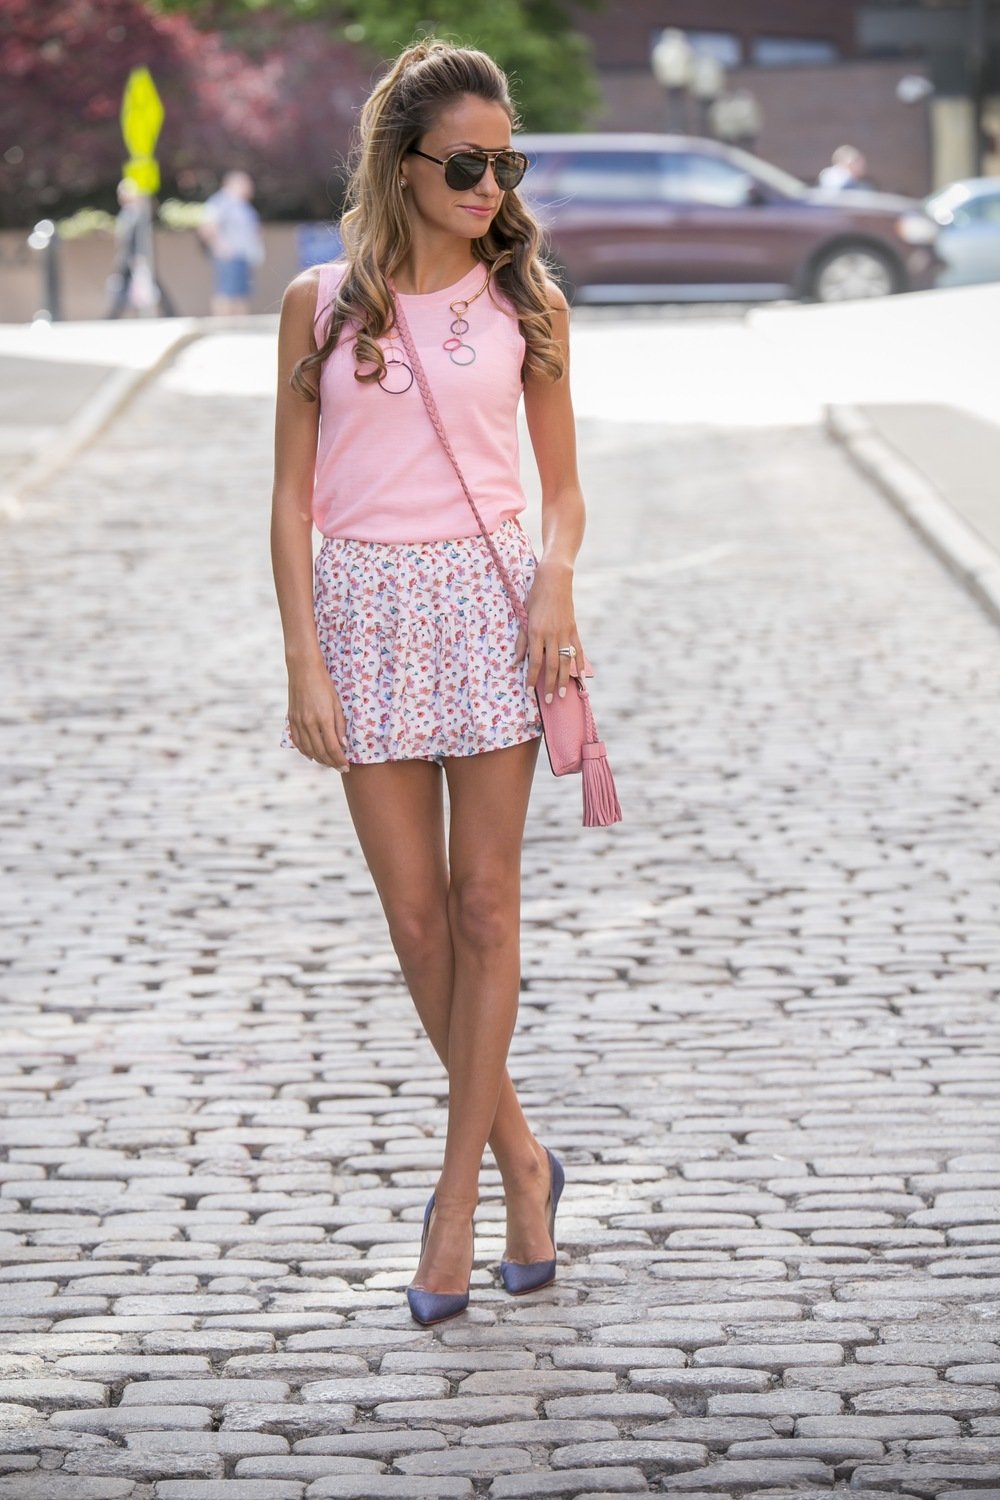 north of manhattan seen in floral shorts and Rebecca Minkoff accessories